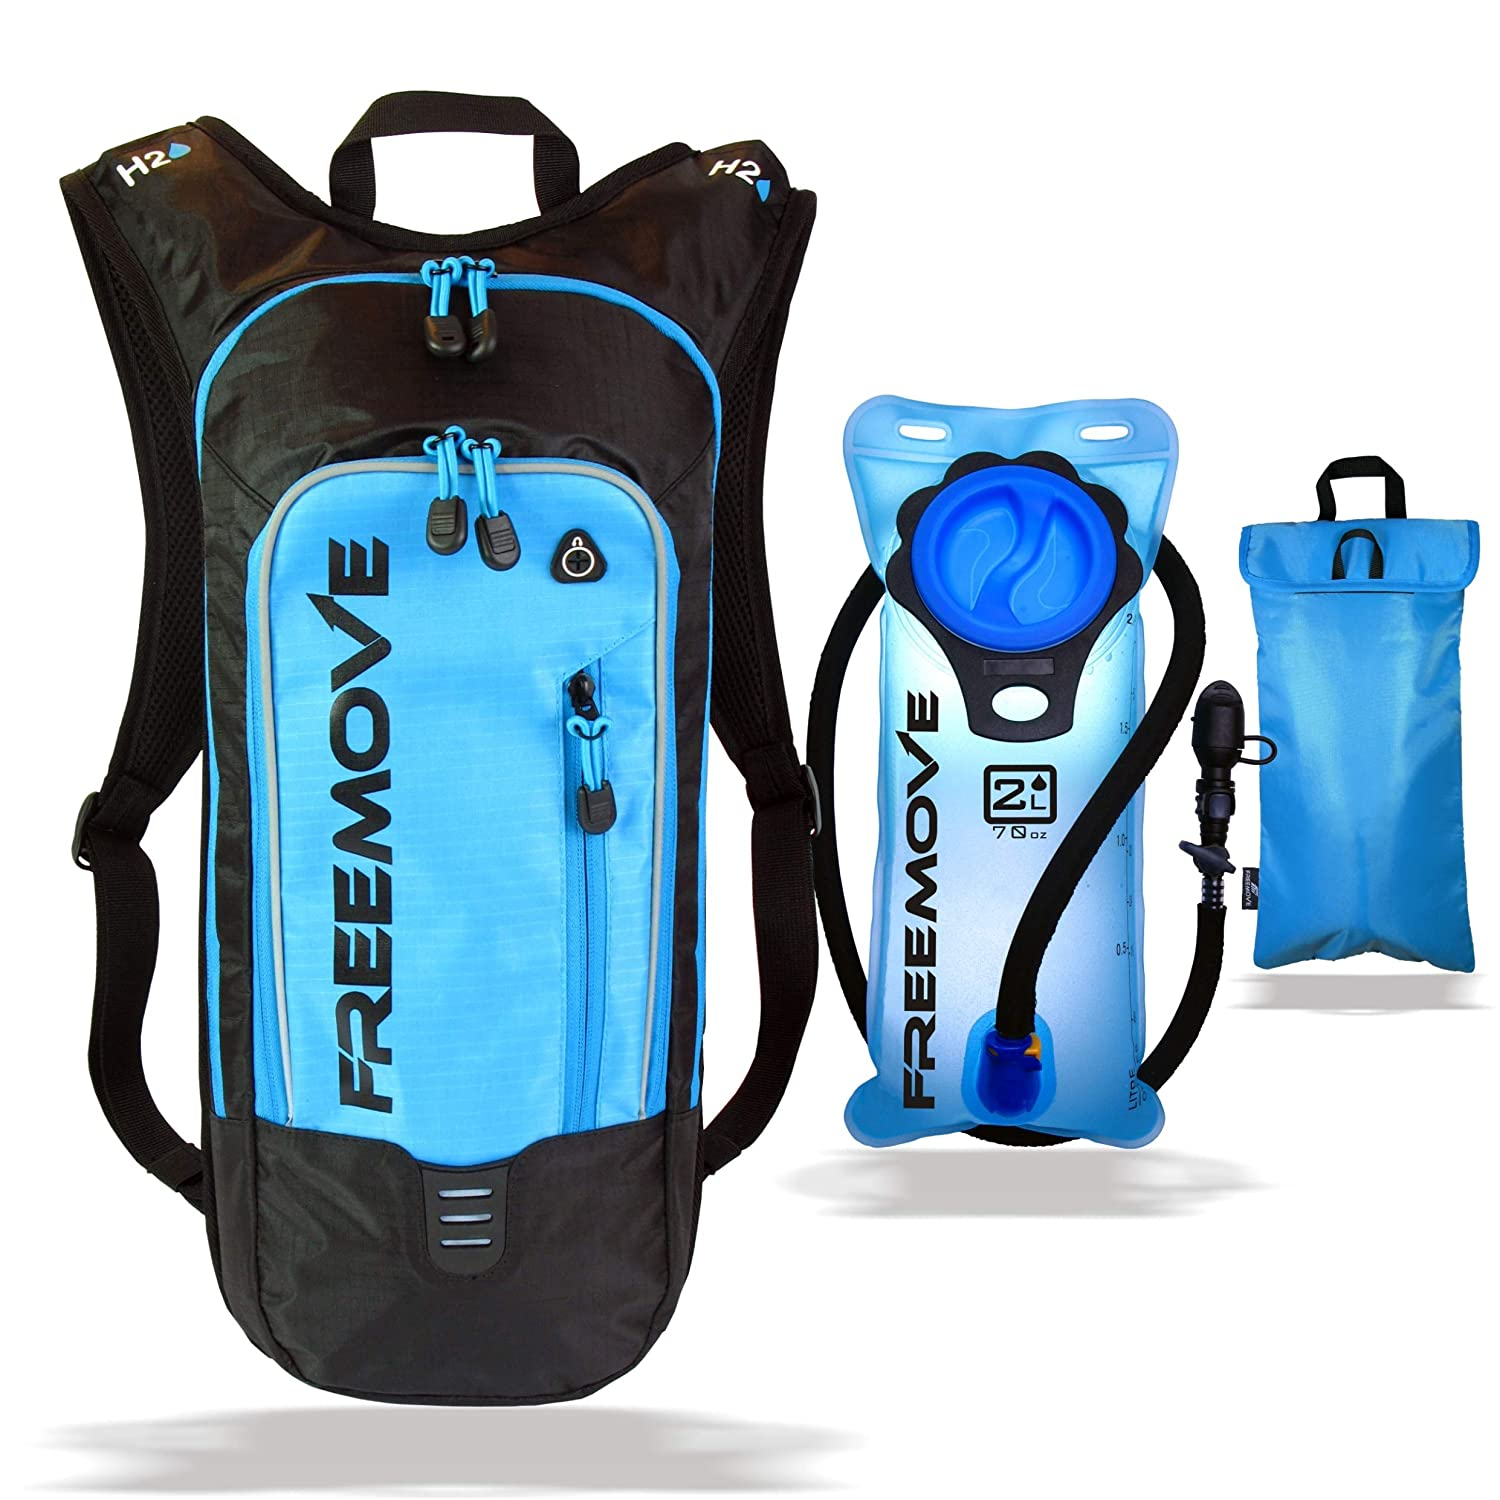 FREEMOVE No.1 Hydration Pack Backpack 2L Water